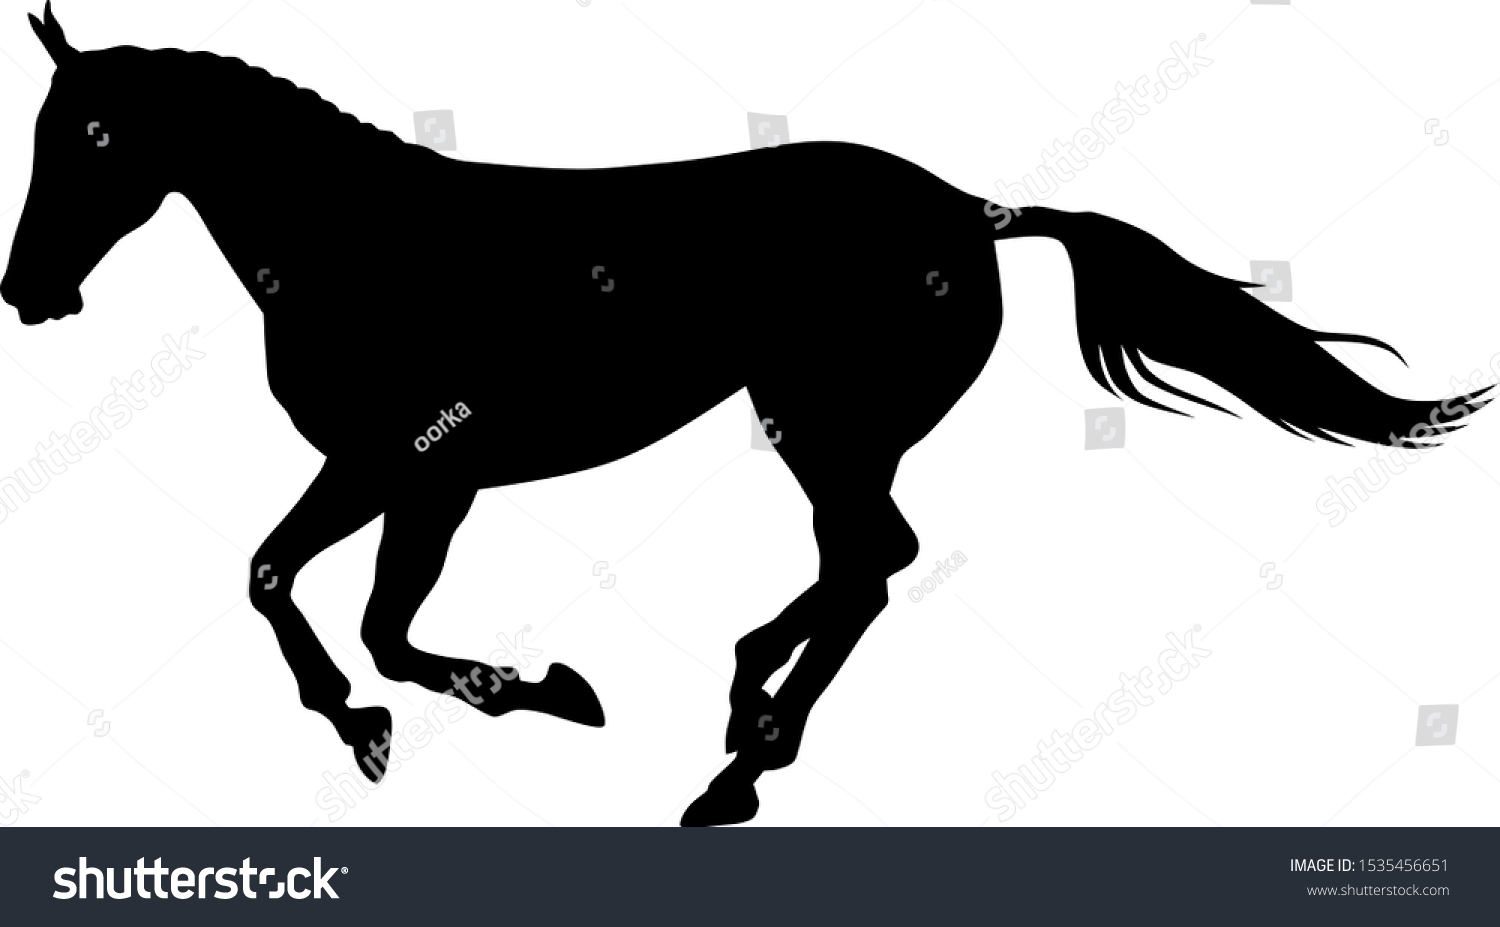 Vector Illustration Running Horse Silhouette Stock Vector Royalty Free 1535456651